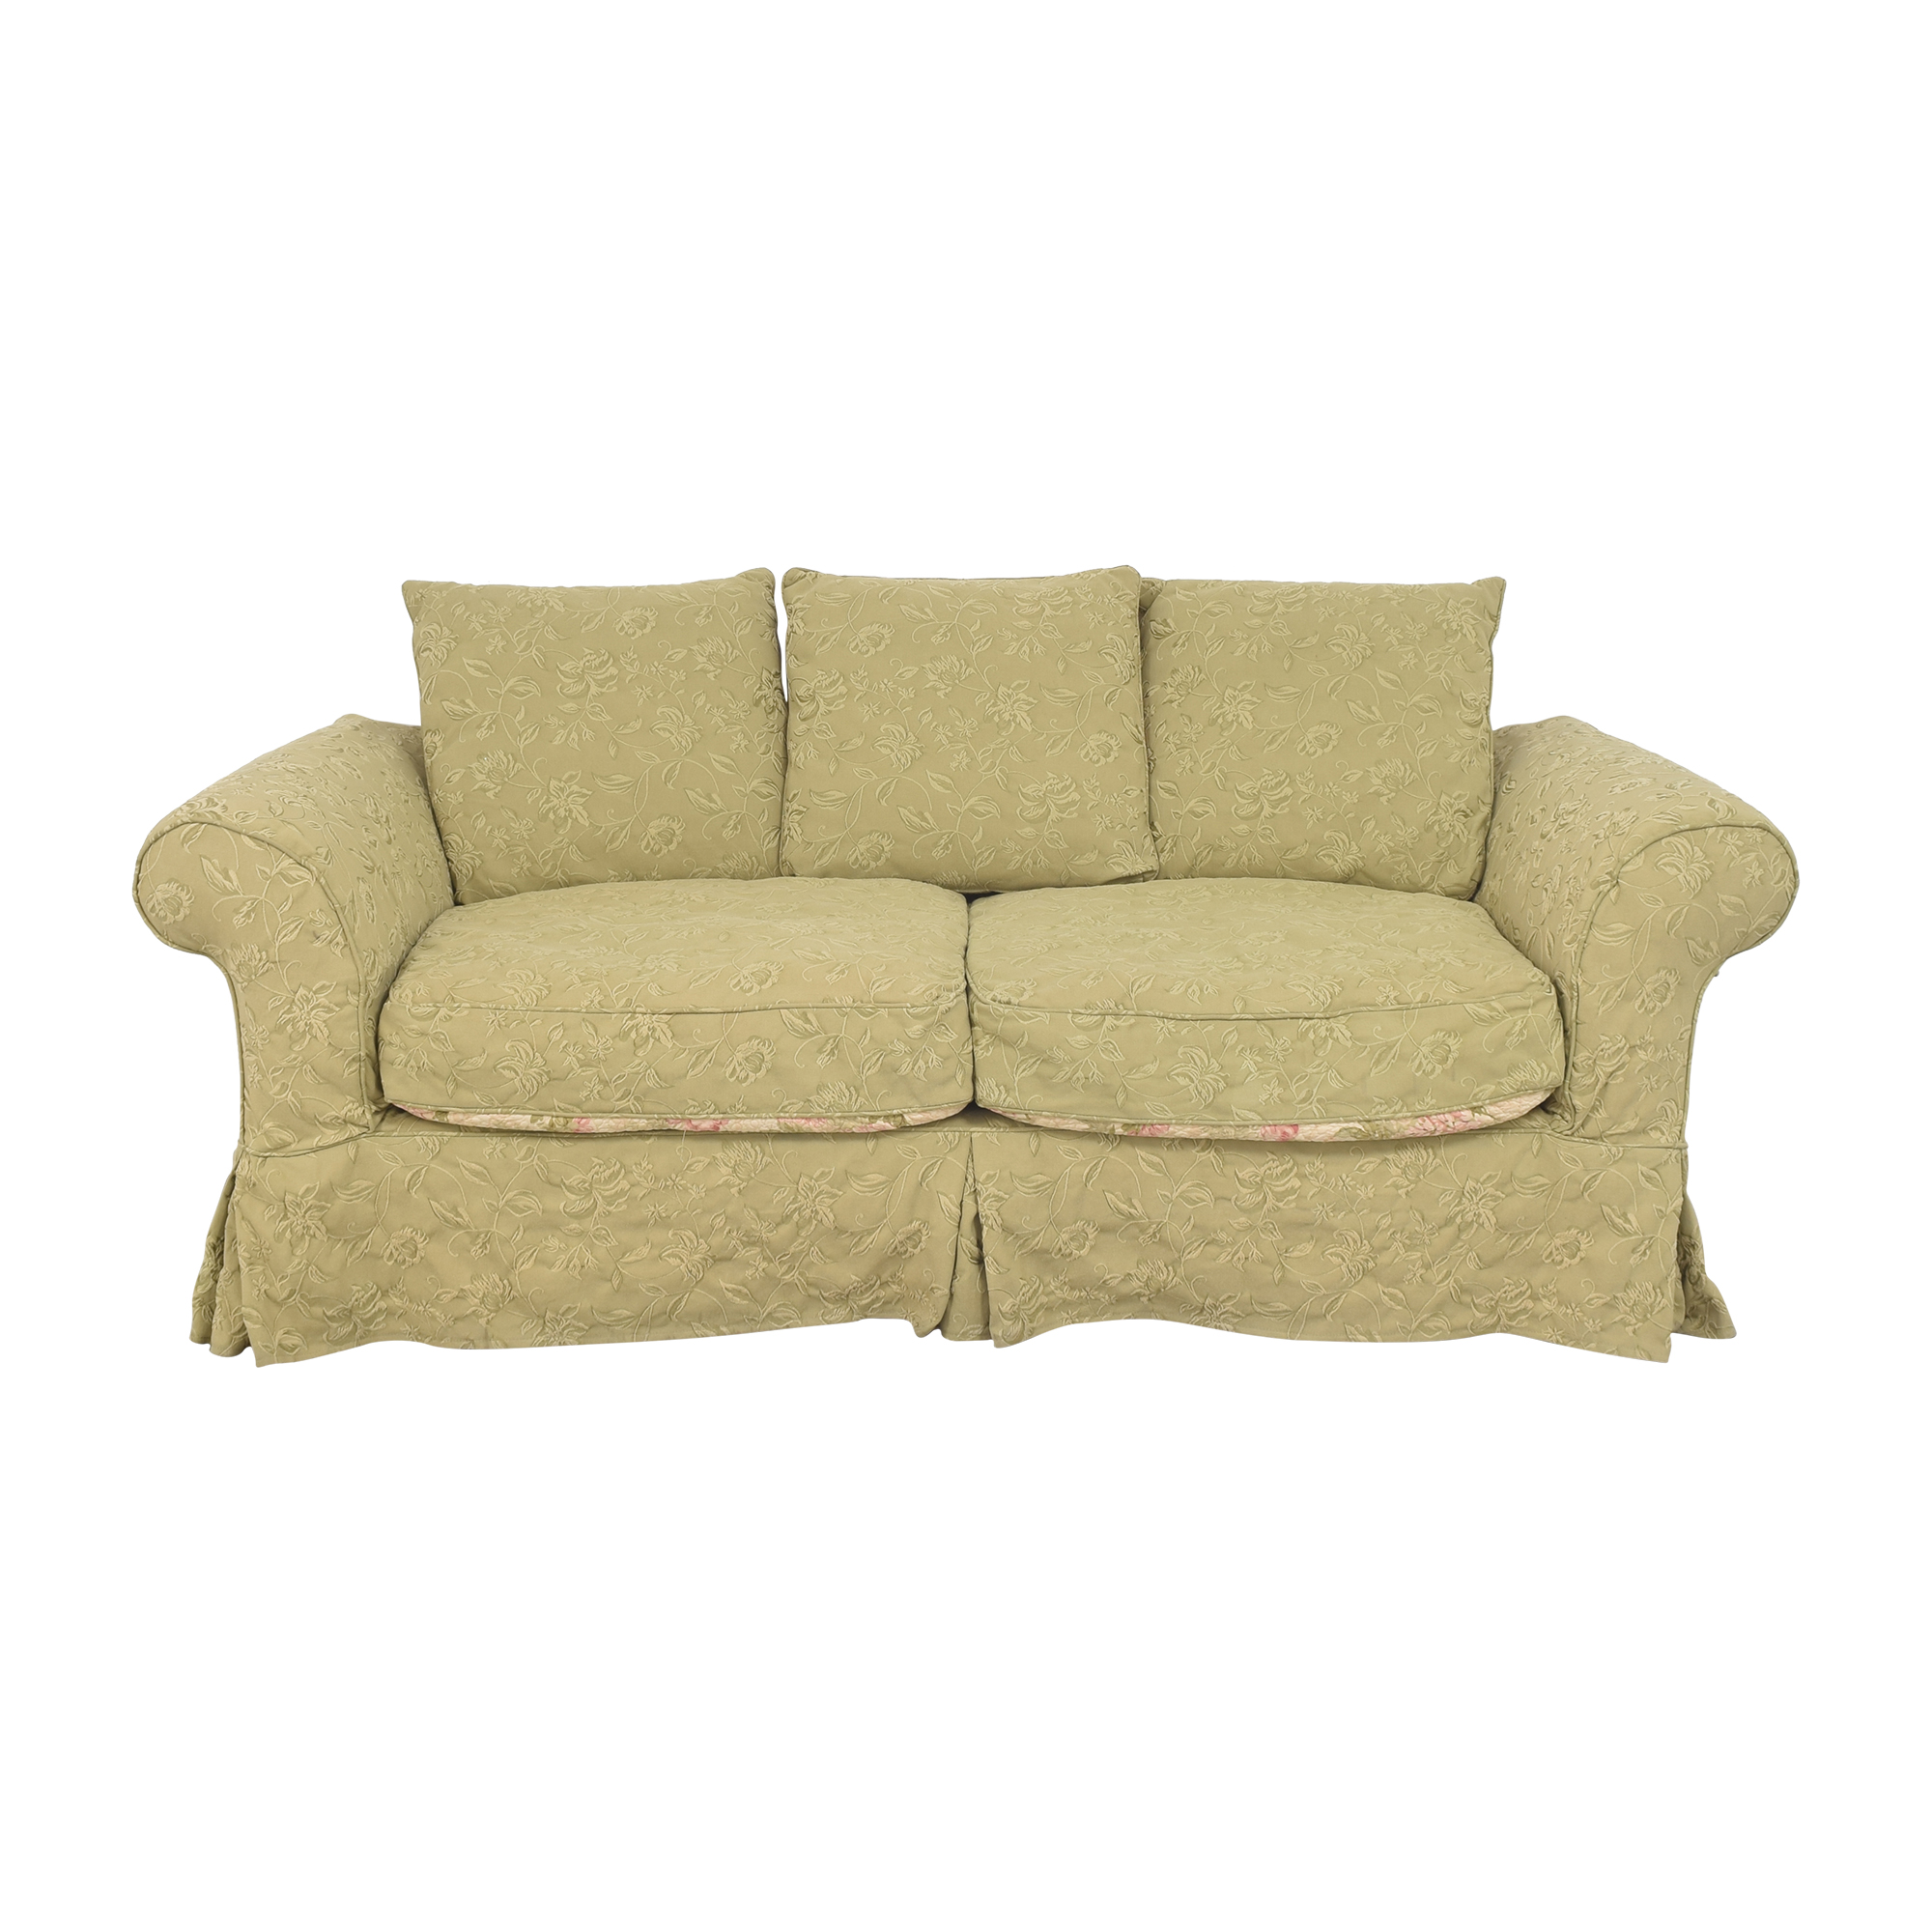 Domain Domain Floral Slipcovered Sofa ma